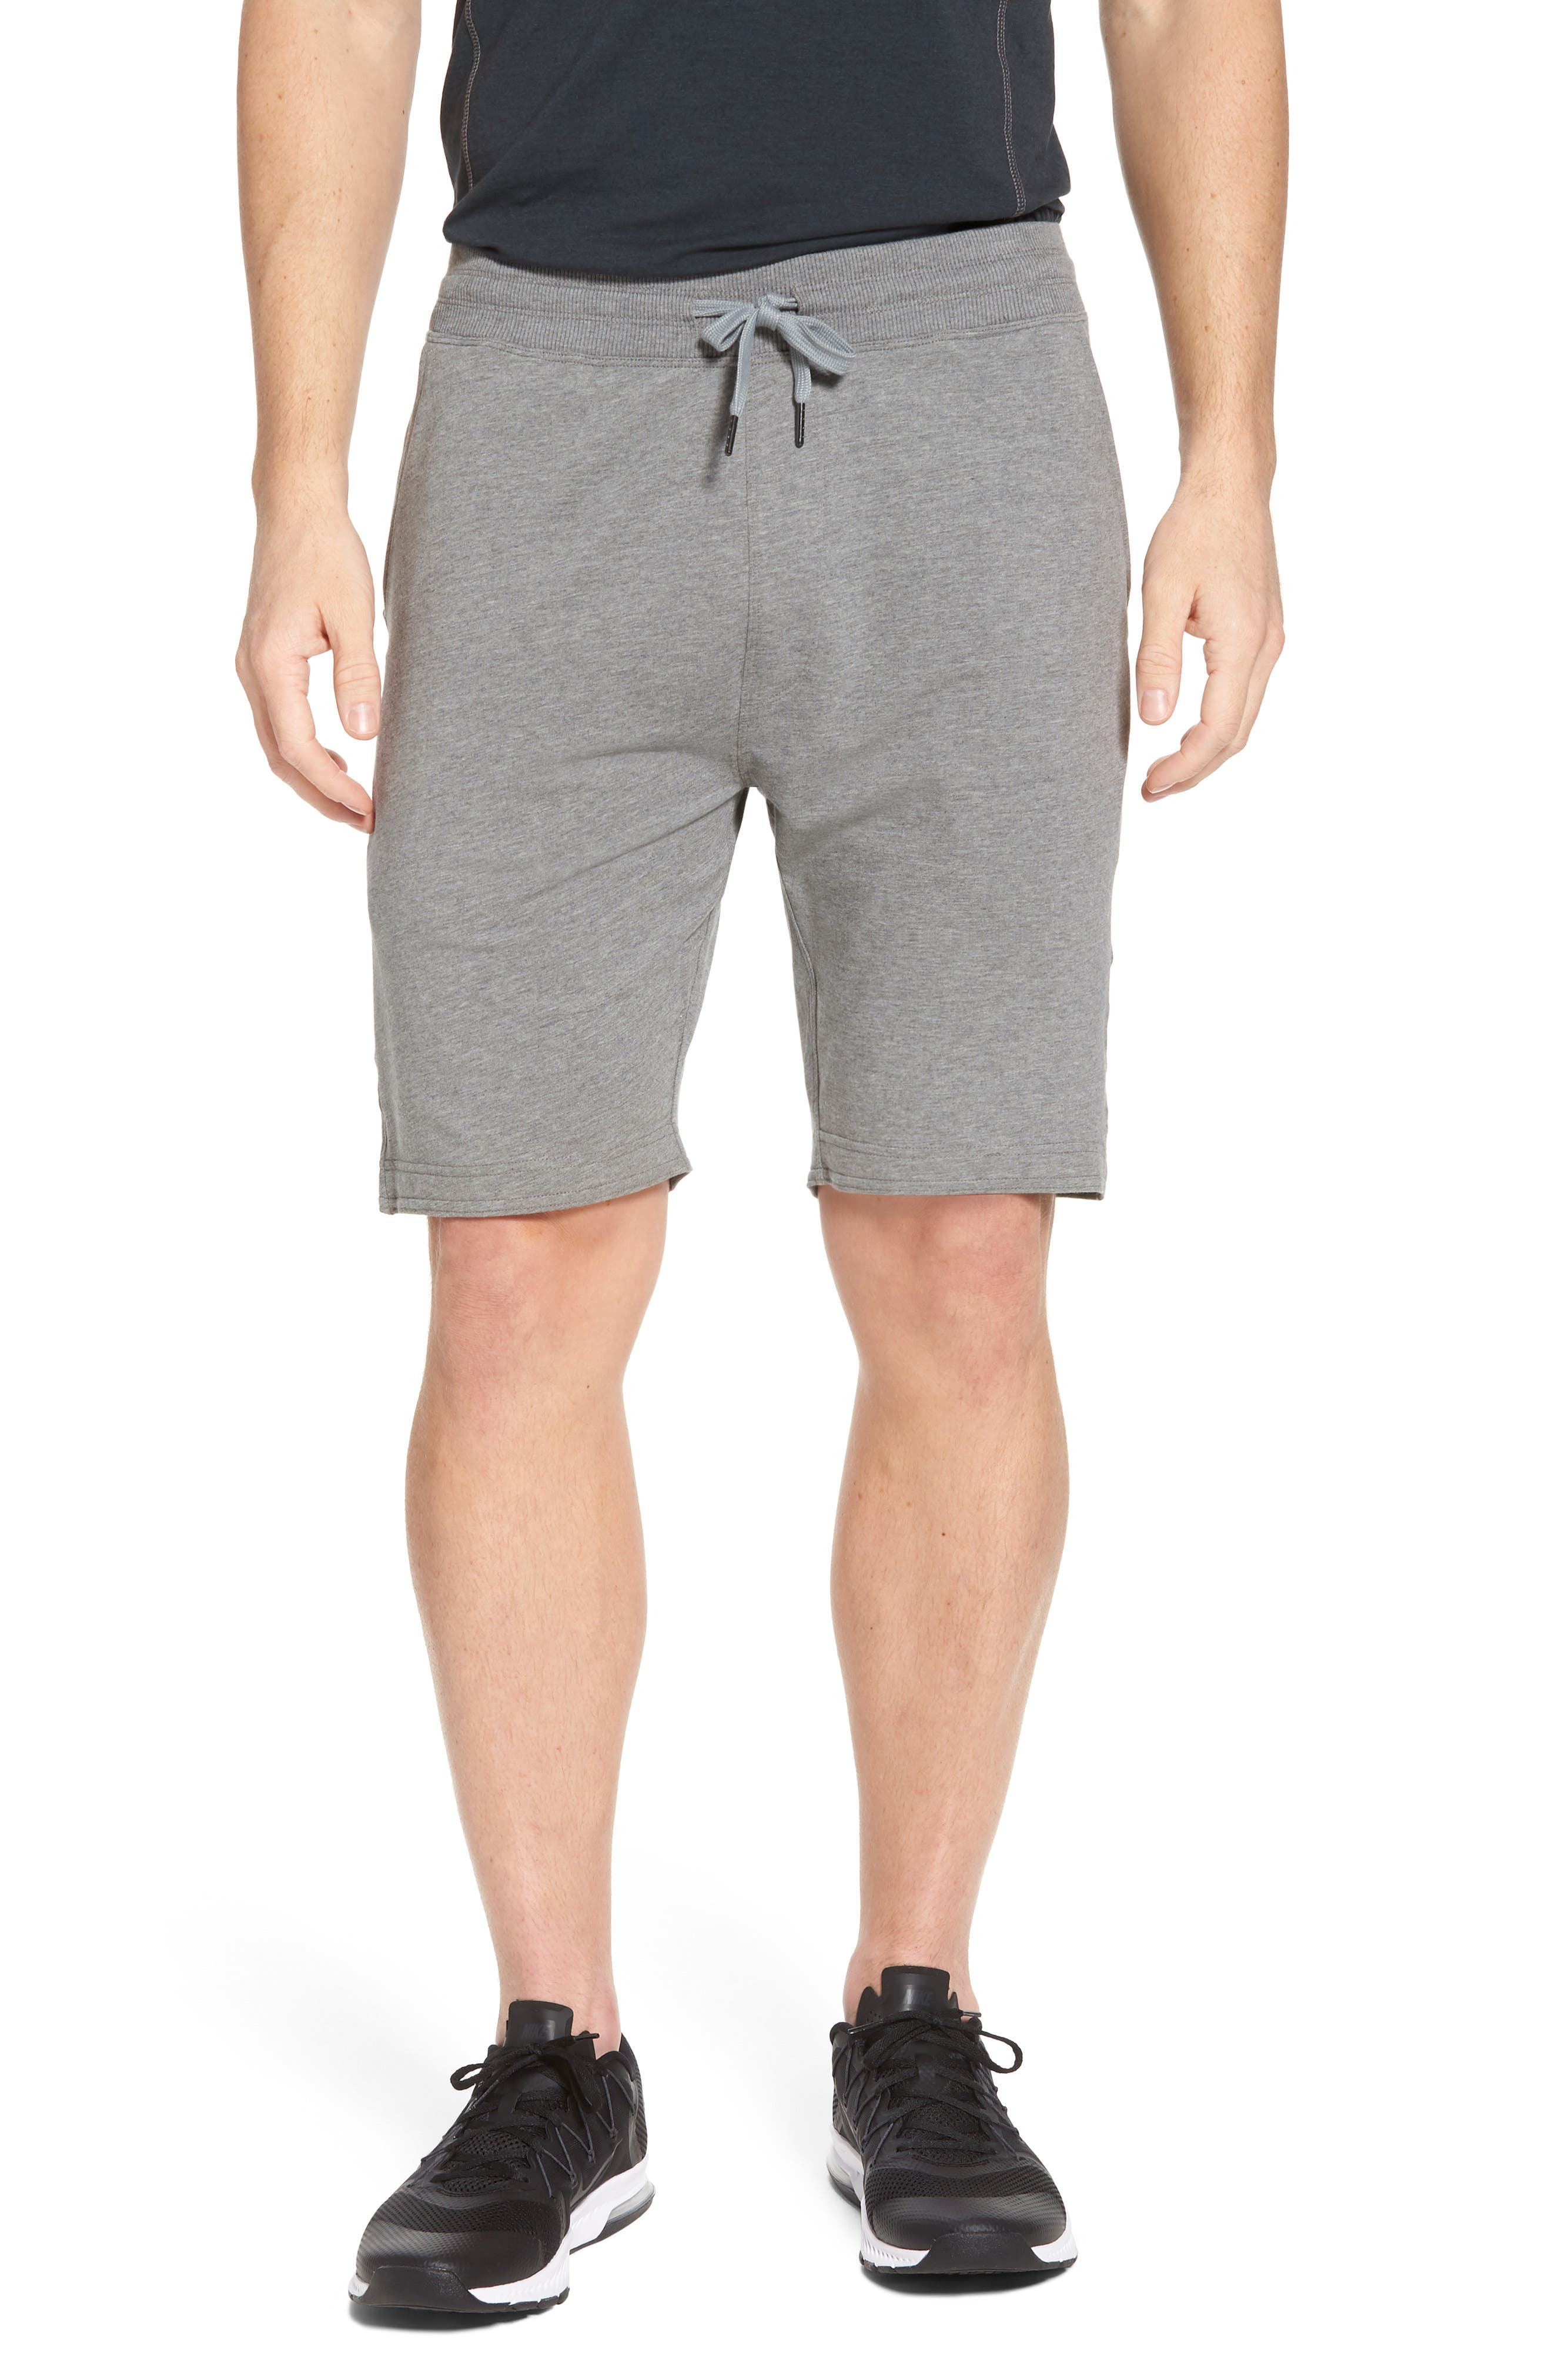 Legacy Lounge Shorts,                             Main thumbnail 1, color,                             Heather Grey